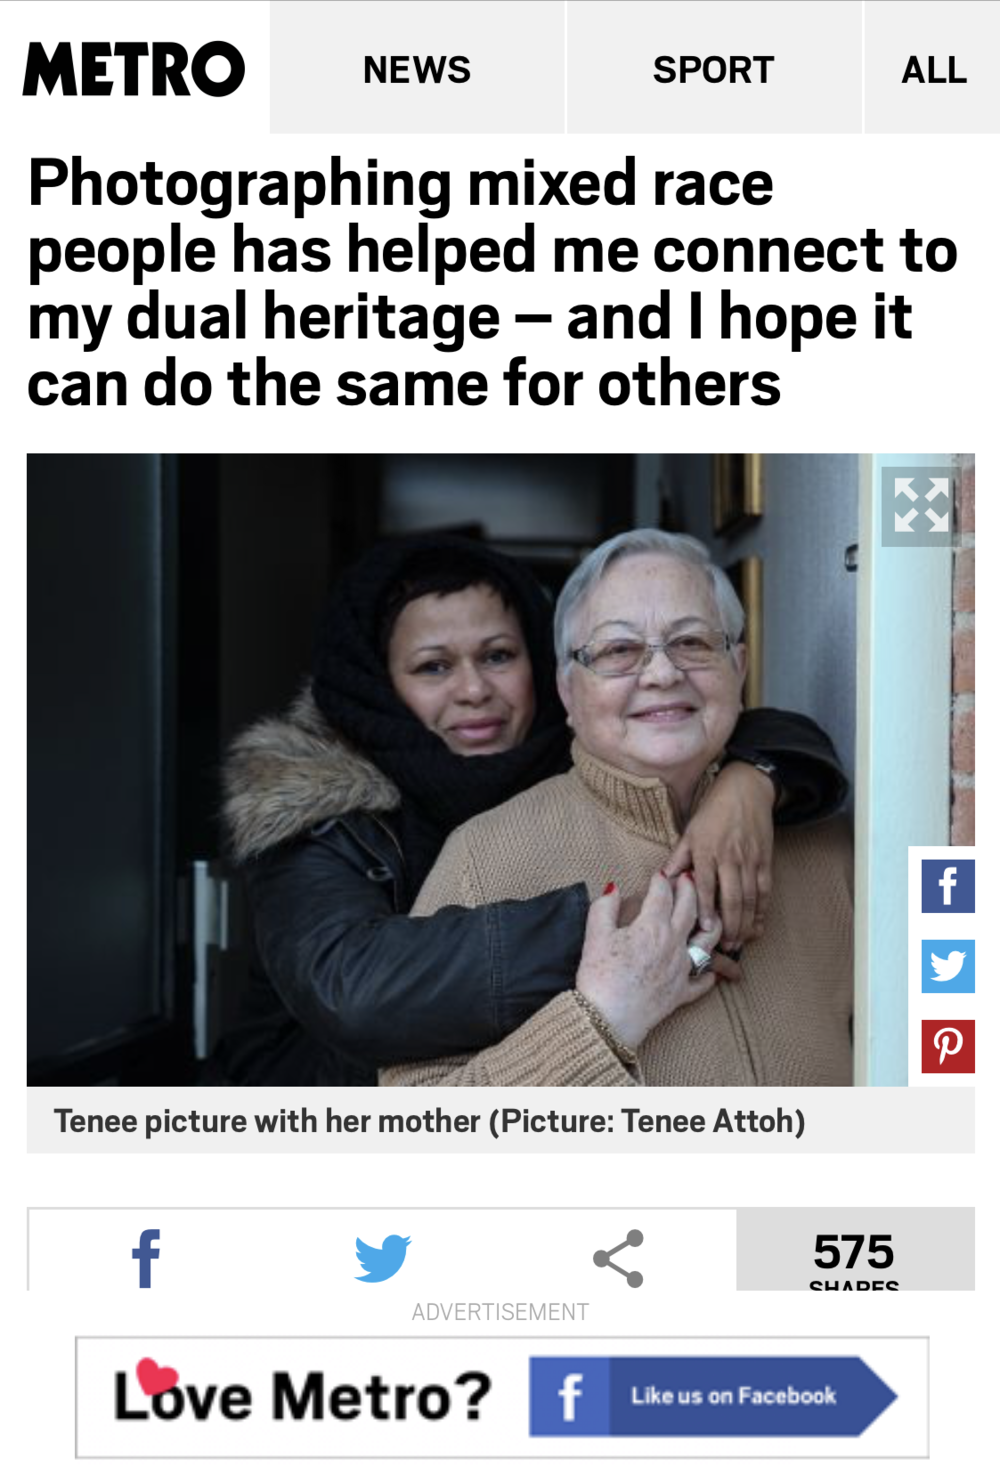 - https://metro.co.uk/2018/10/21/photographing-mixed-race-people-has-helped-me-connect-to-my-dual-heritage-and-i-hope-it-can-do-the-same-for-others-7896393/